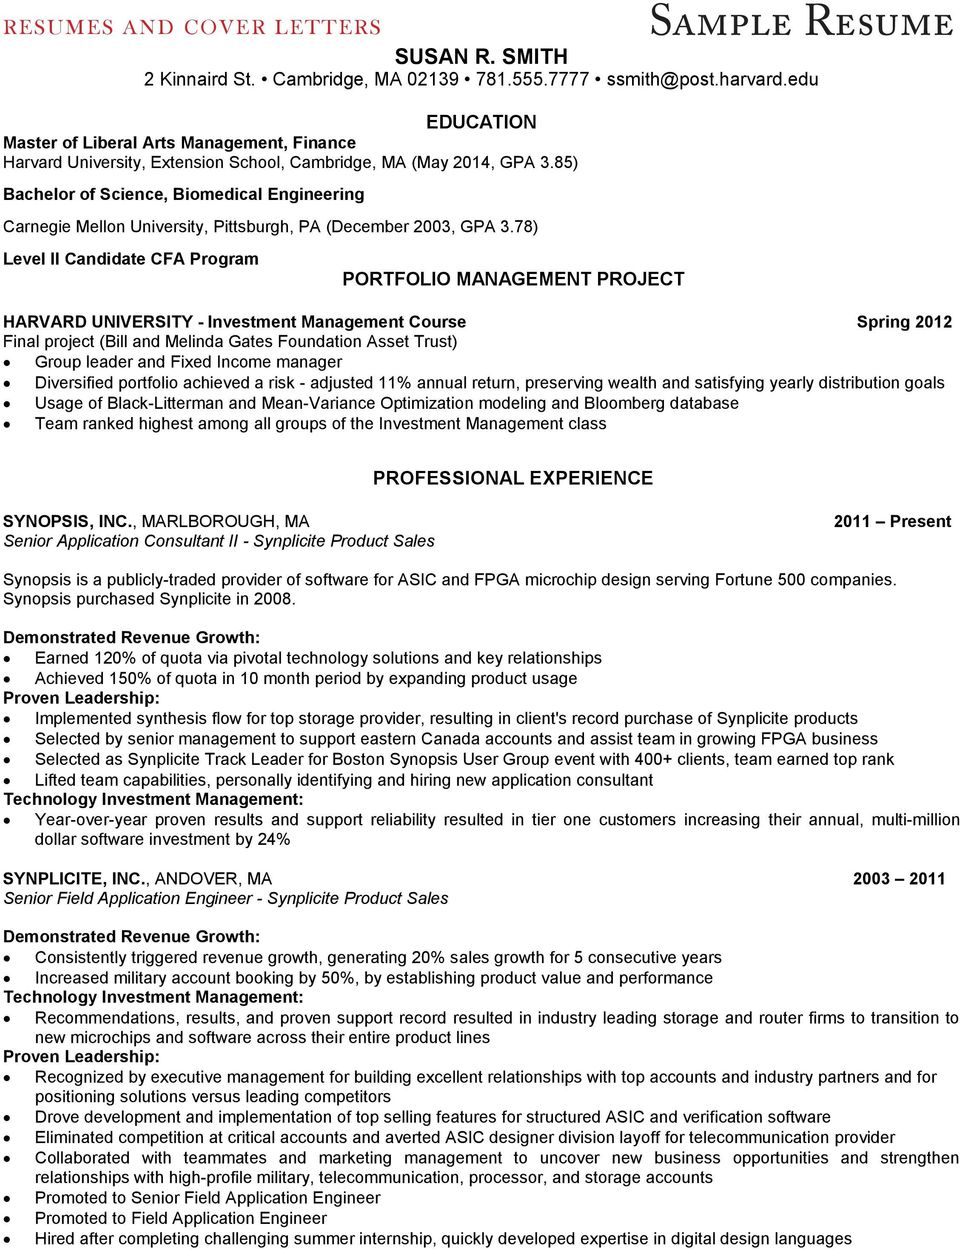 RESUMES and COVER LETTERS - PDF